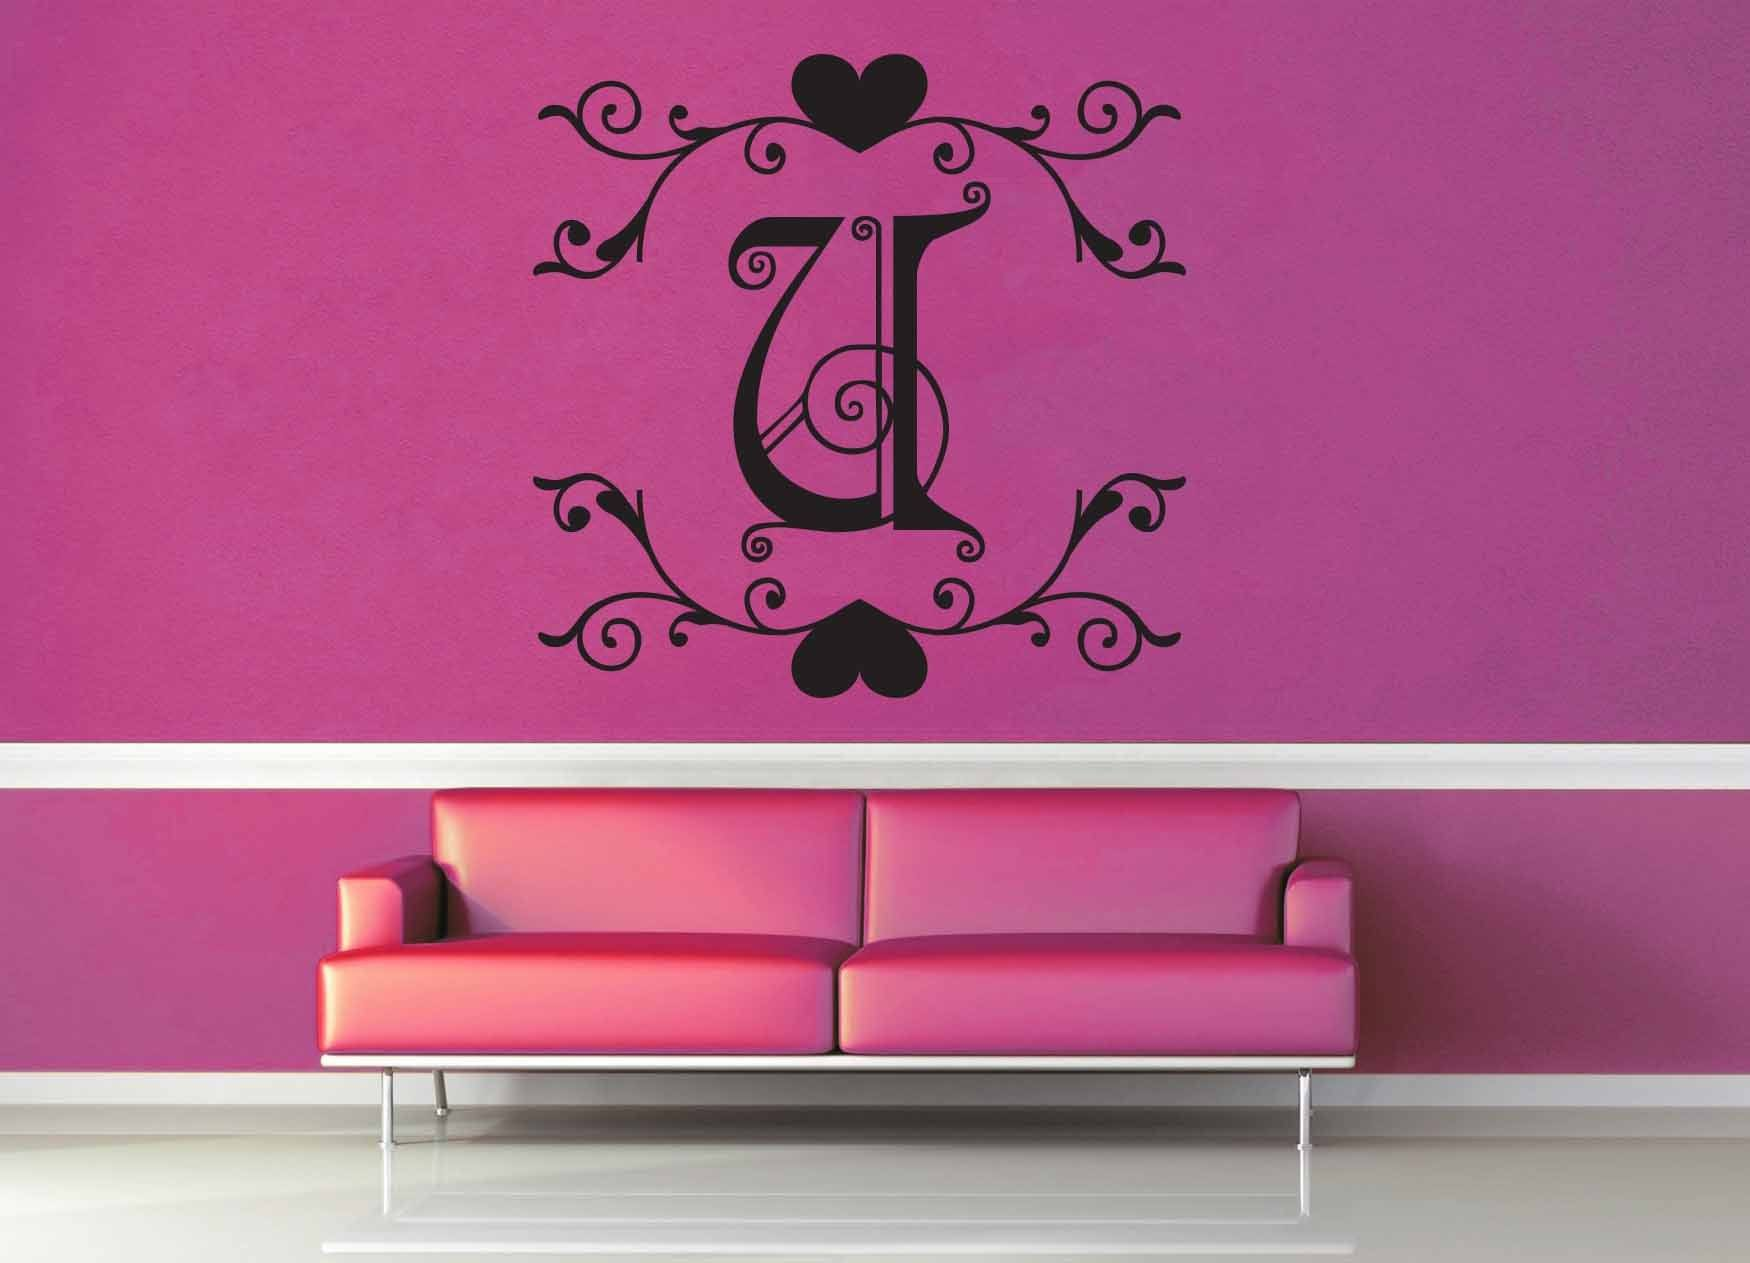 Fantasy Monogram - U - Wall Decal